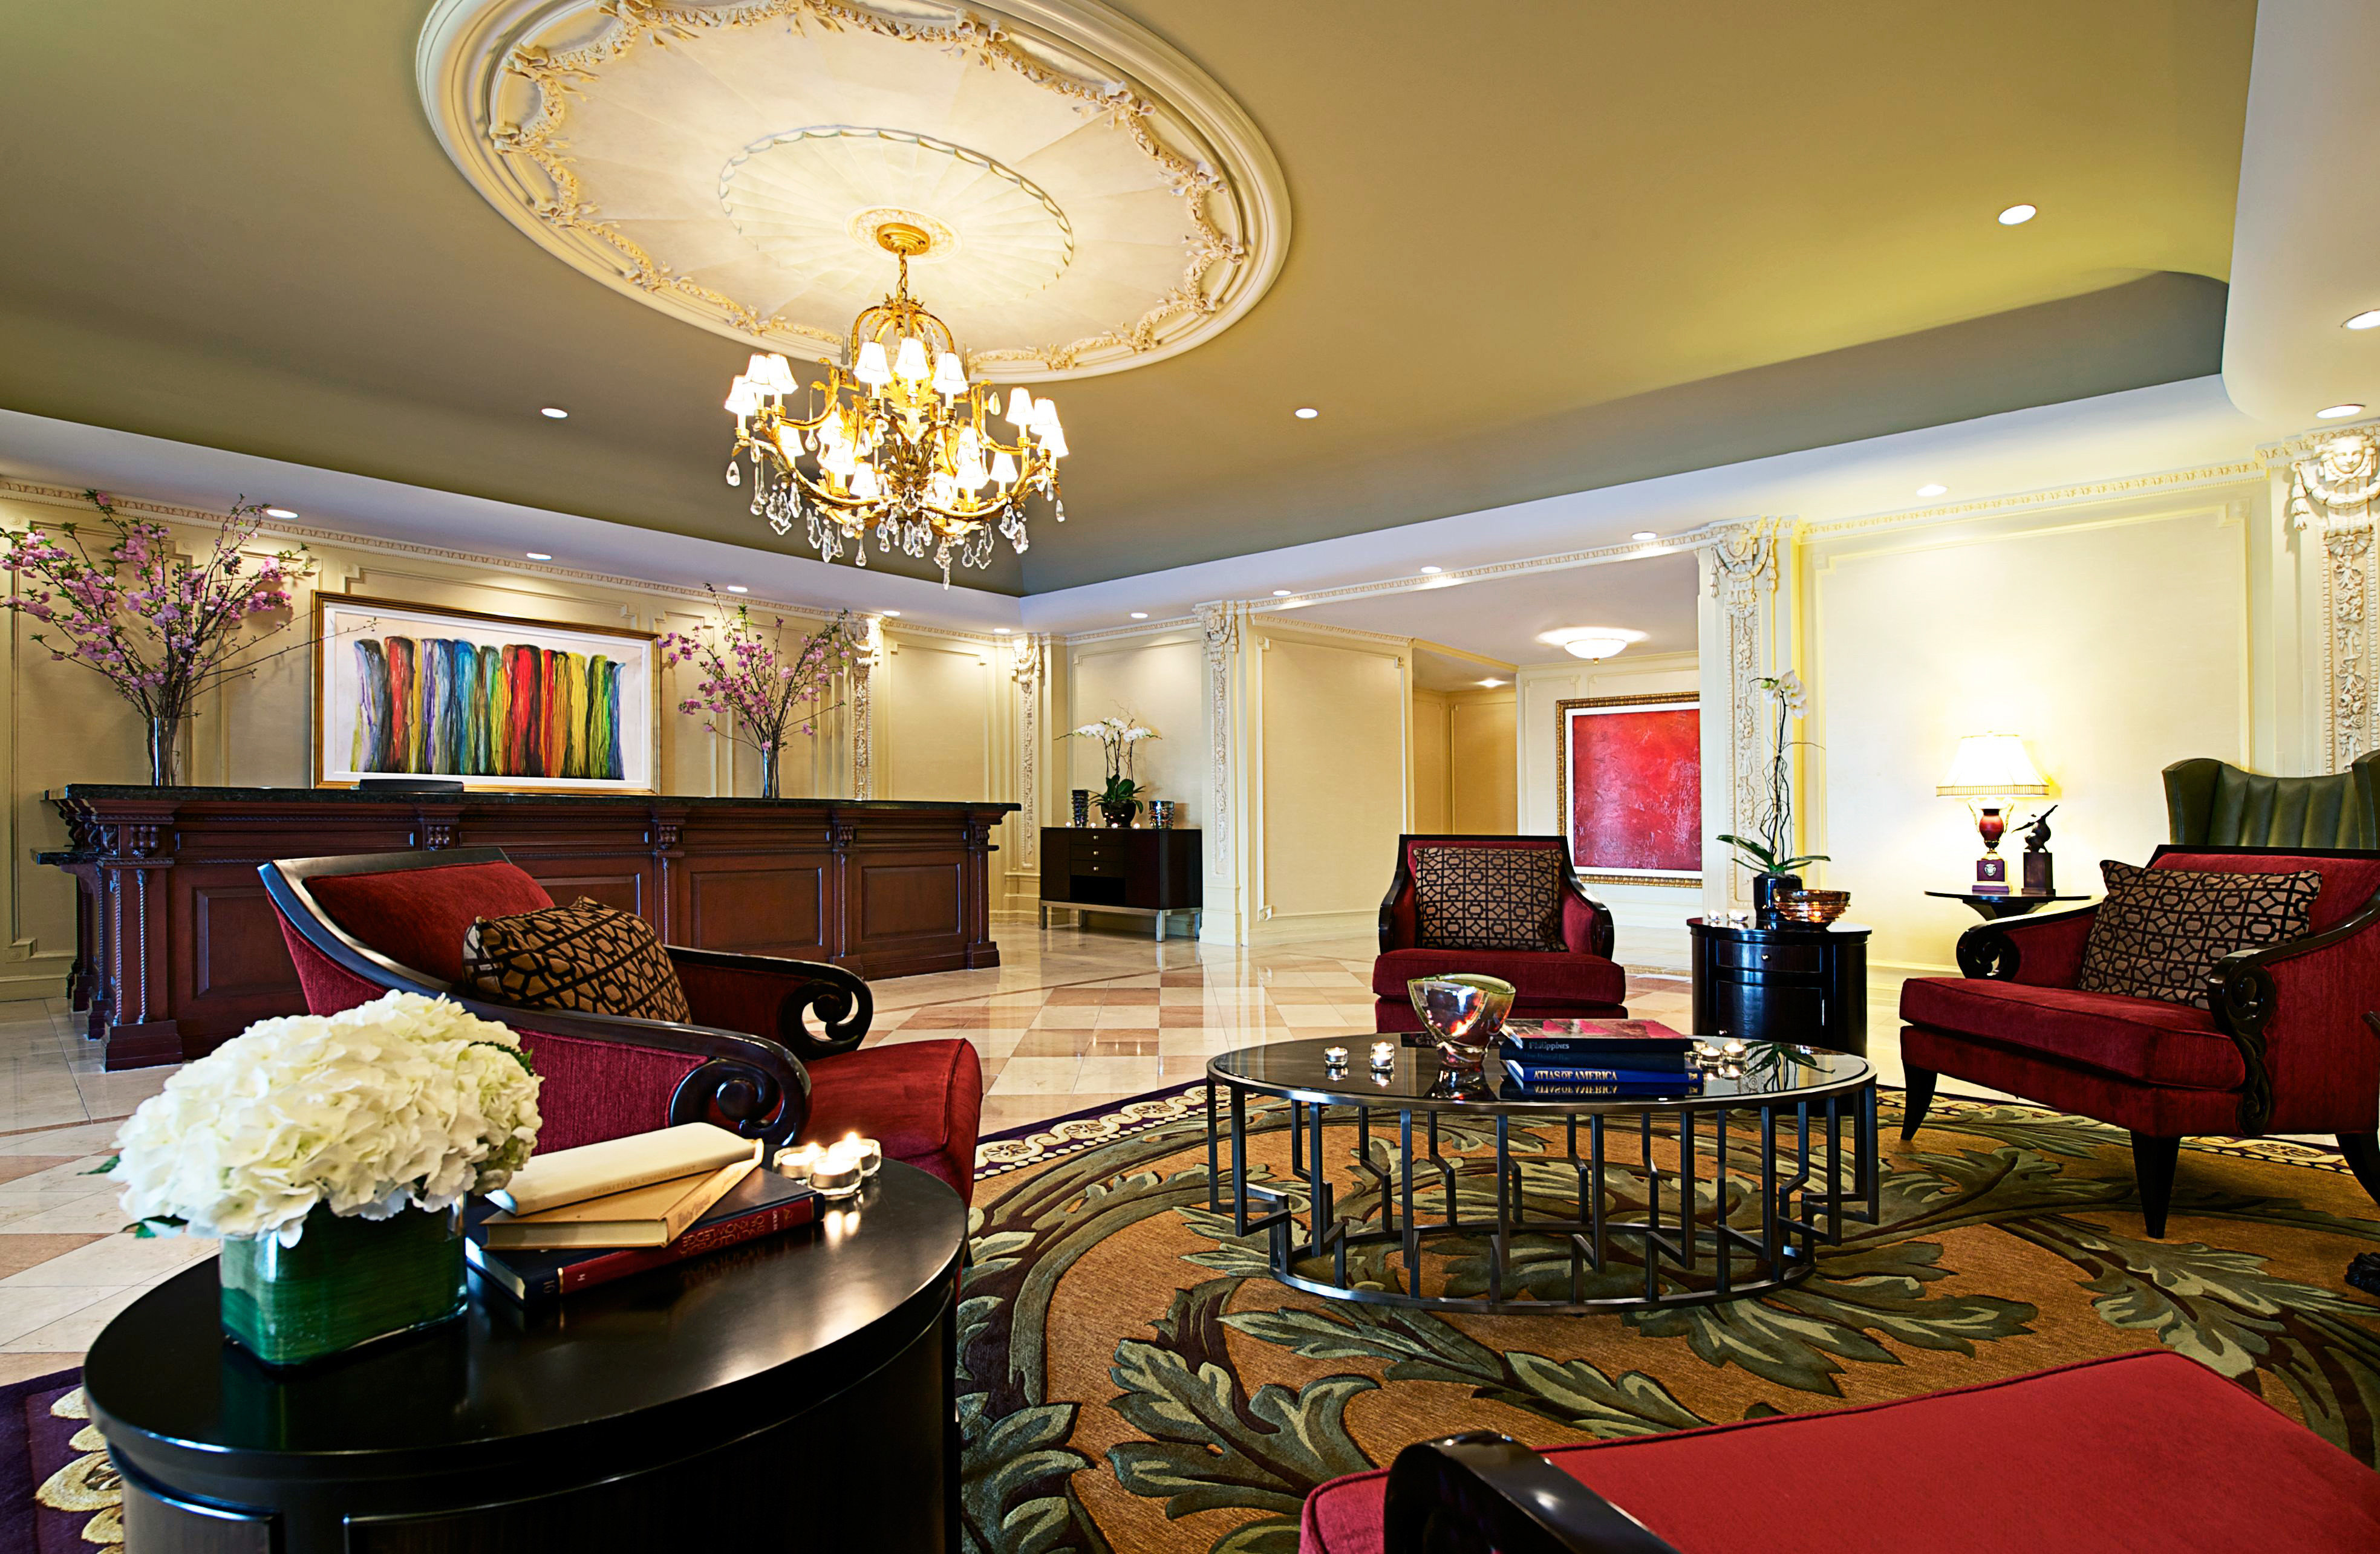 Boutique Budget City Classic Lobby Lounge property living room home Suite mansion recreation room dining table